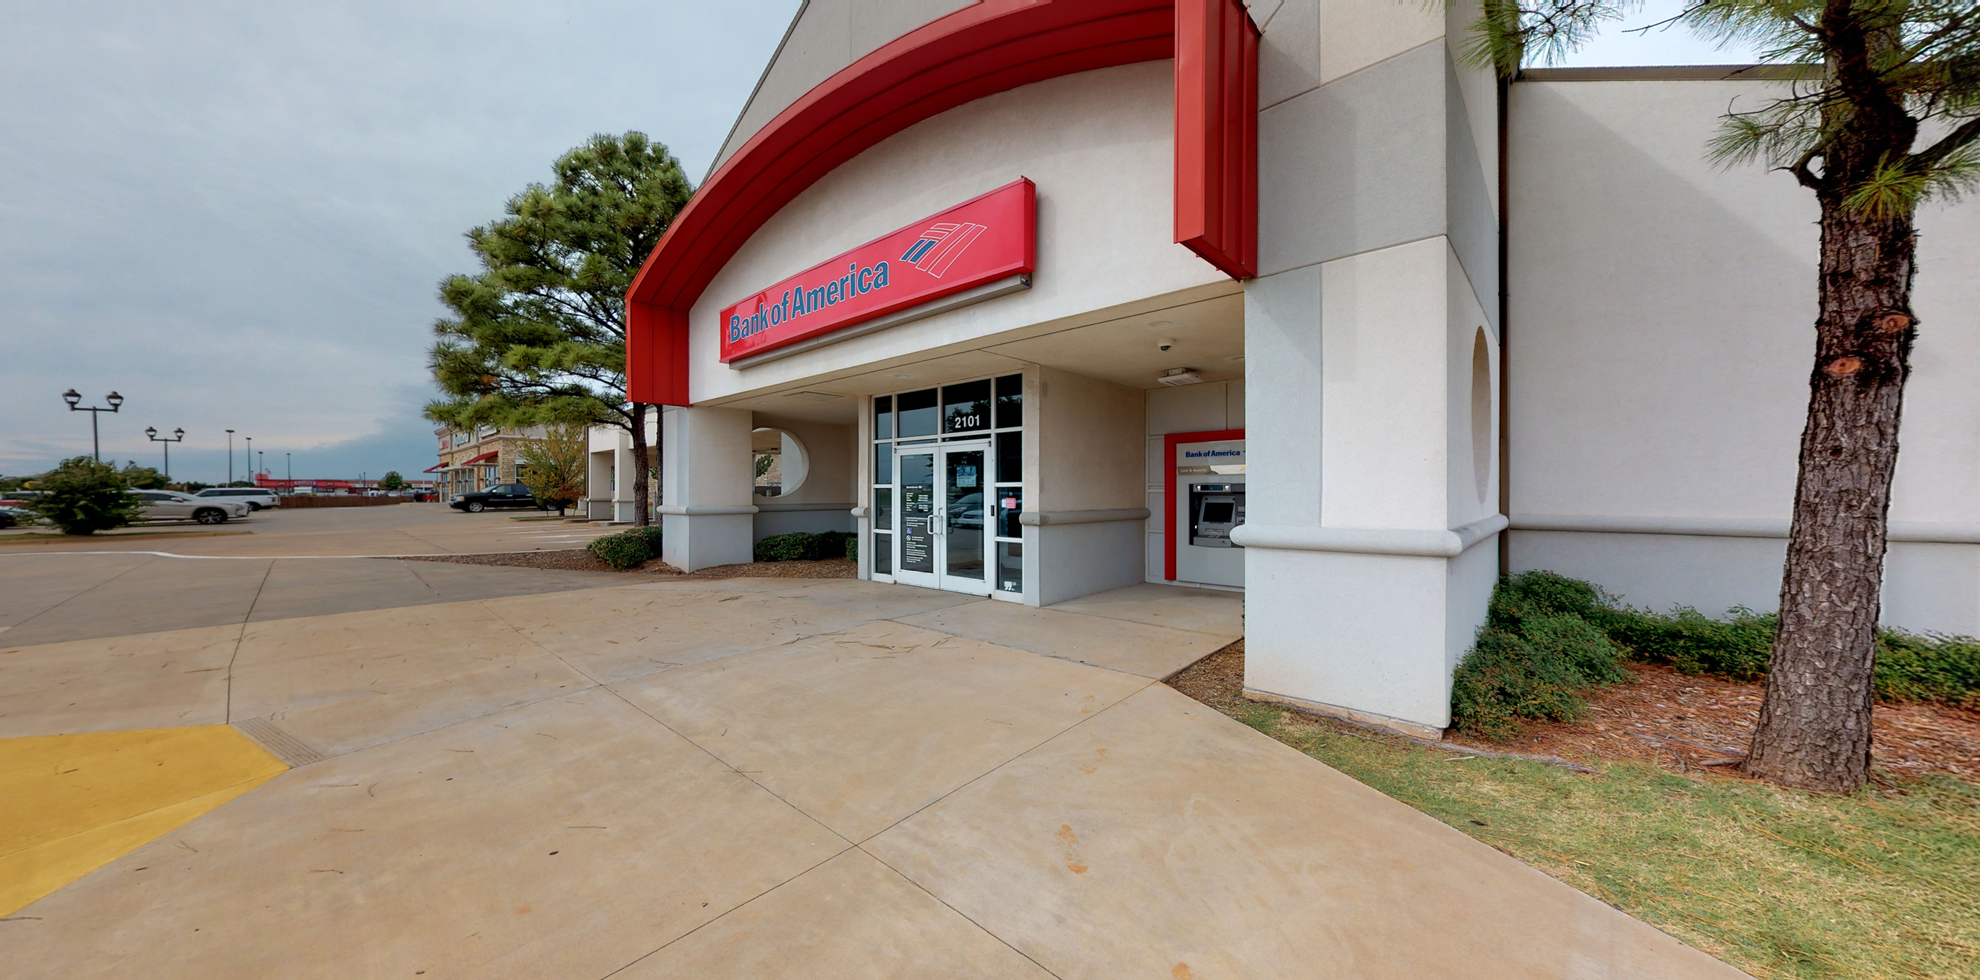 Bank of America financial center with drive-thru ATM and teller   2101 W Memorial Rd, Oklahoma City, OK 73134